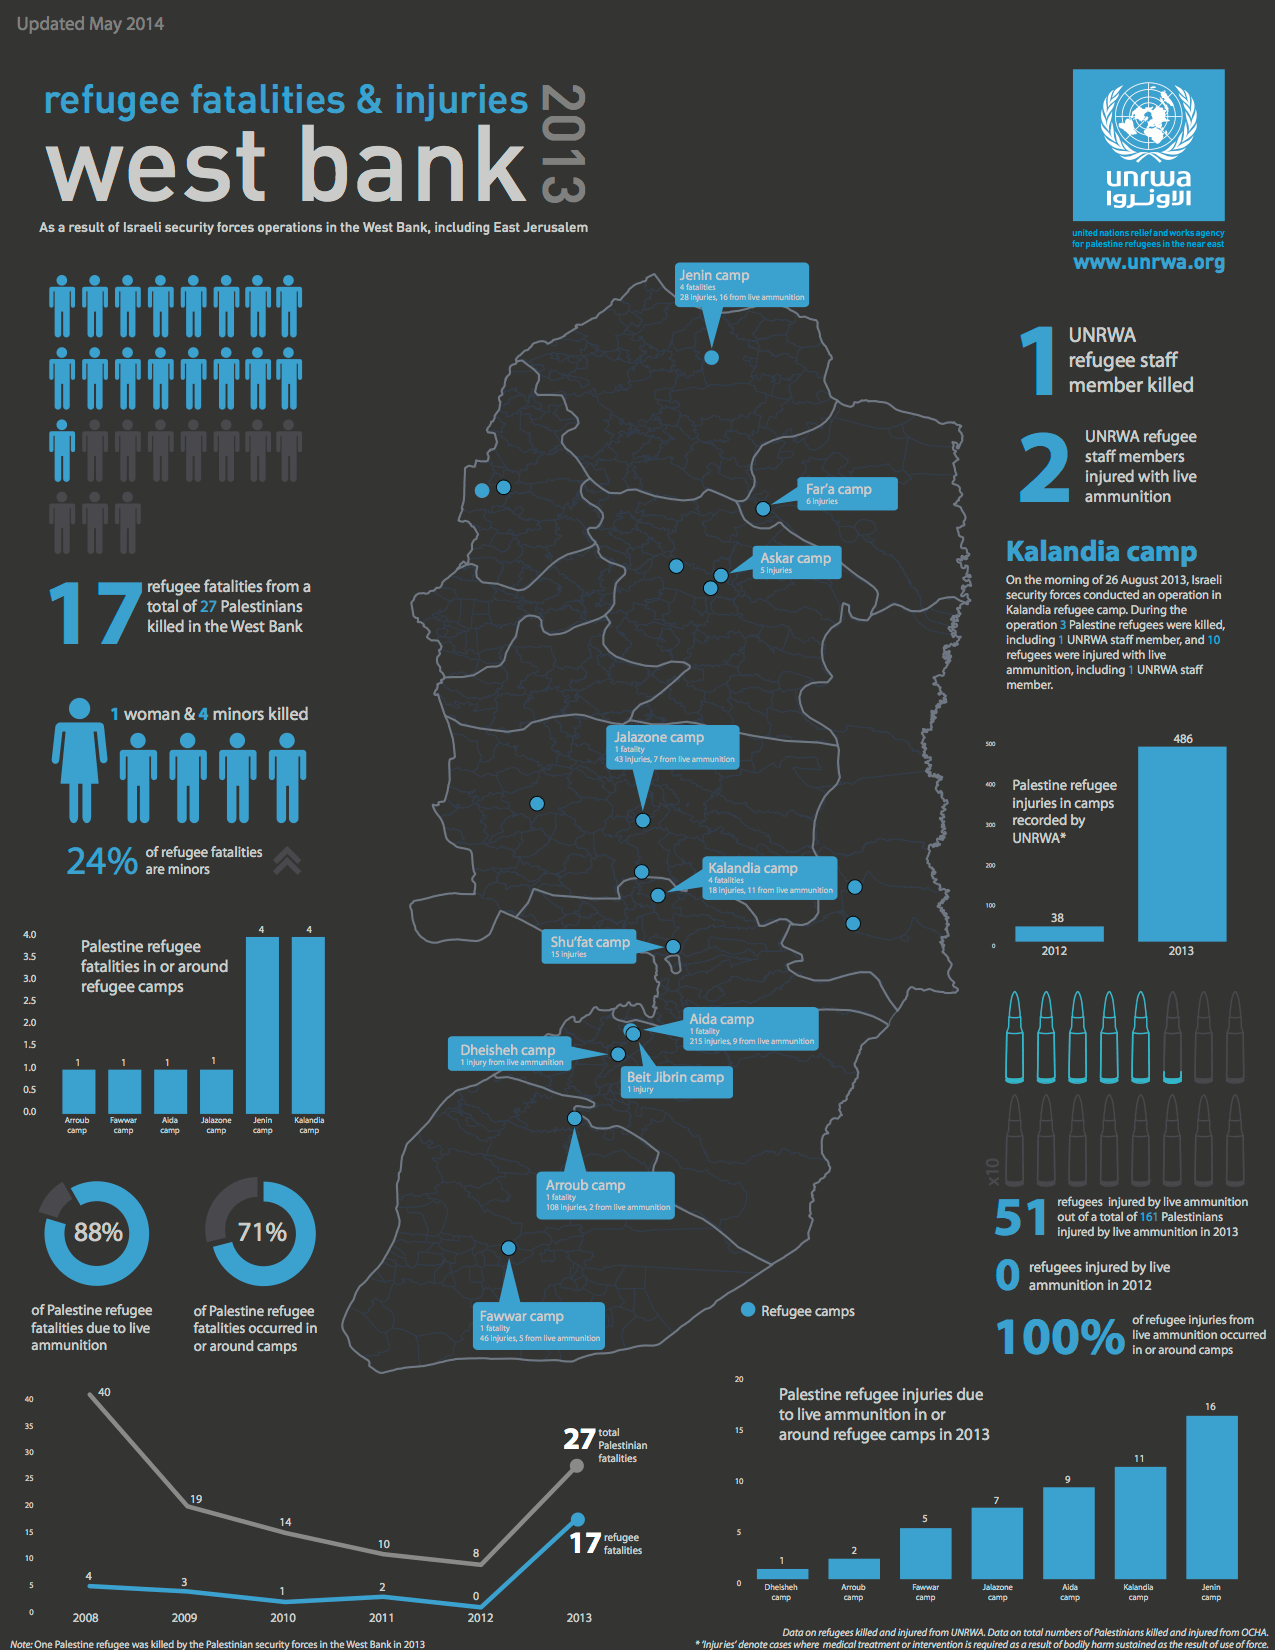 UNRWA infographic on trend in killings of Palestinian refugees in West Bank